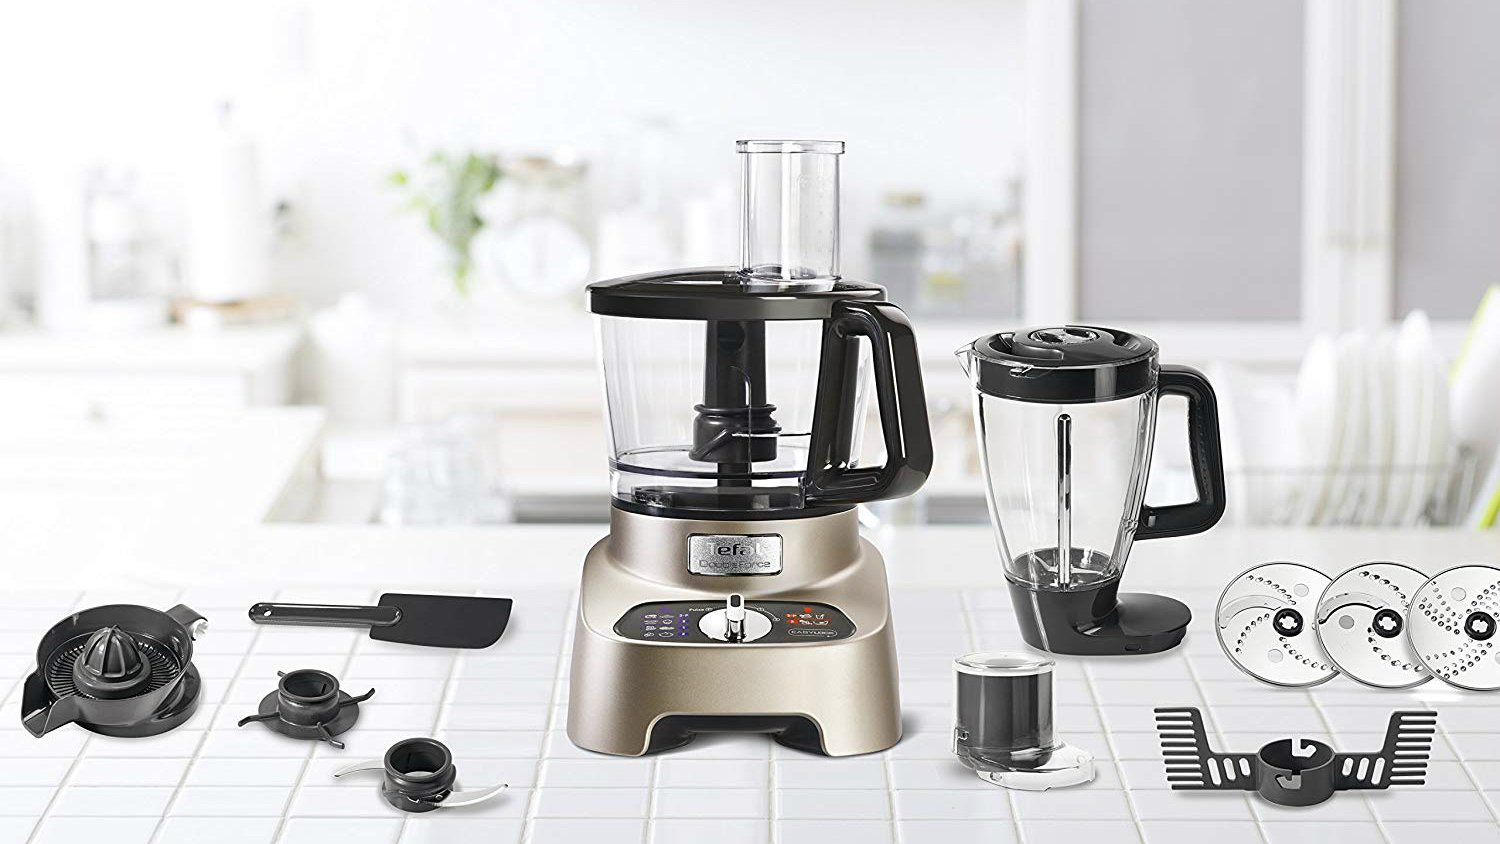 Food processor in the kitchen